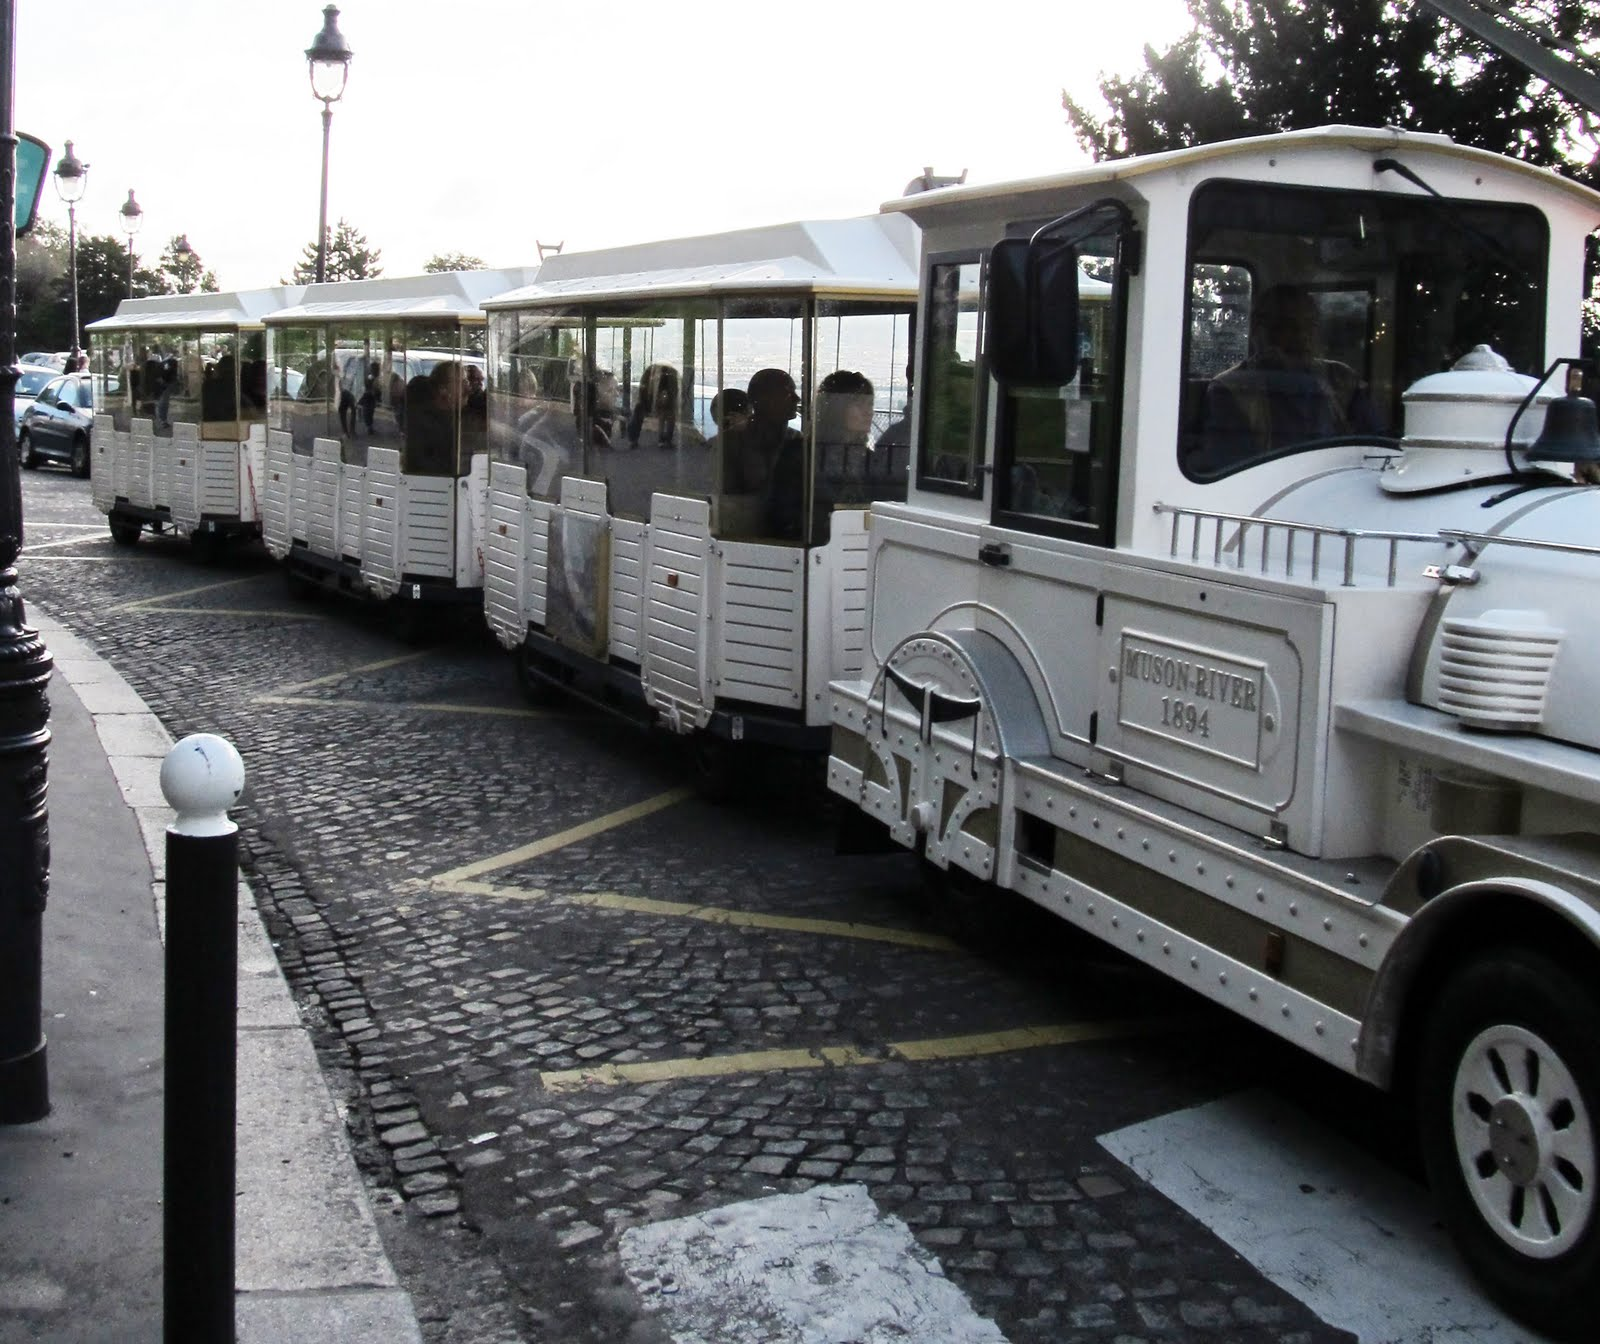 Le Train de Montmartre